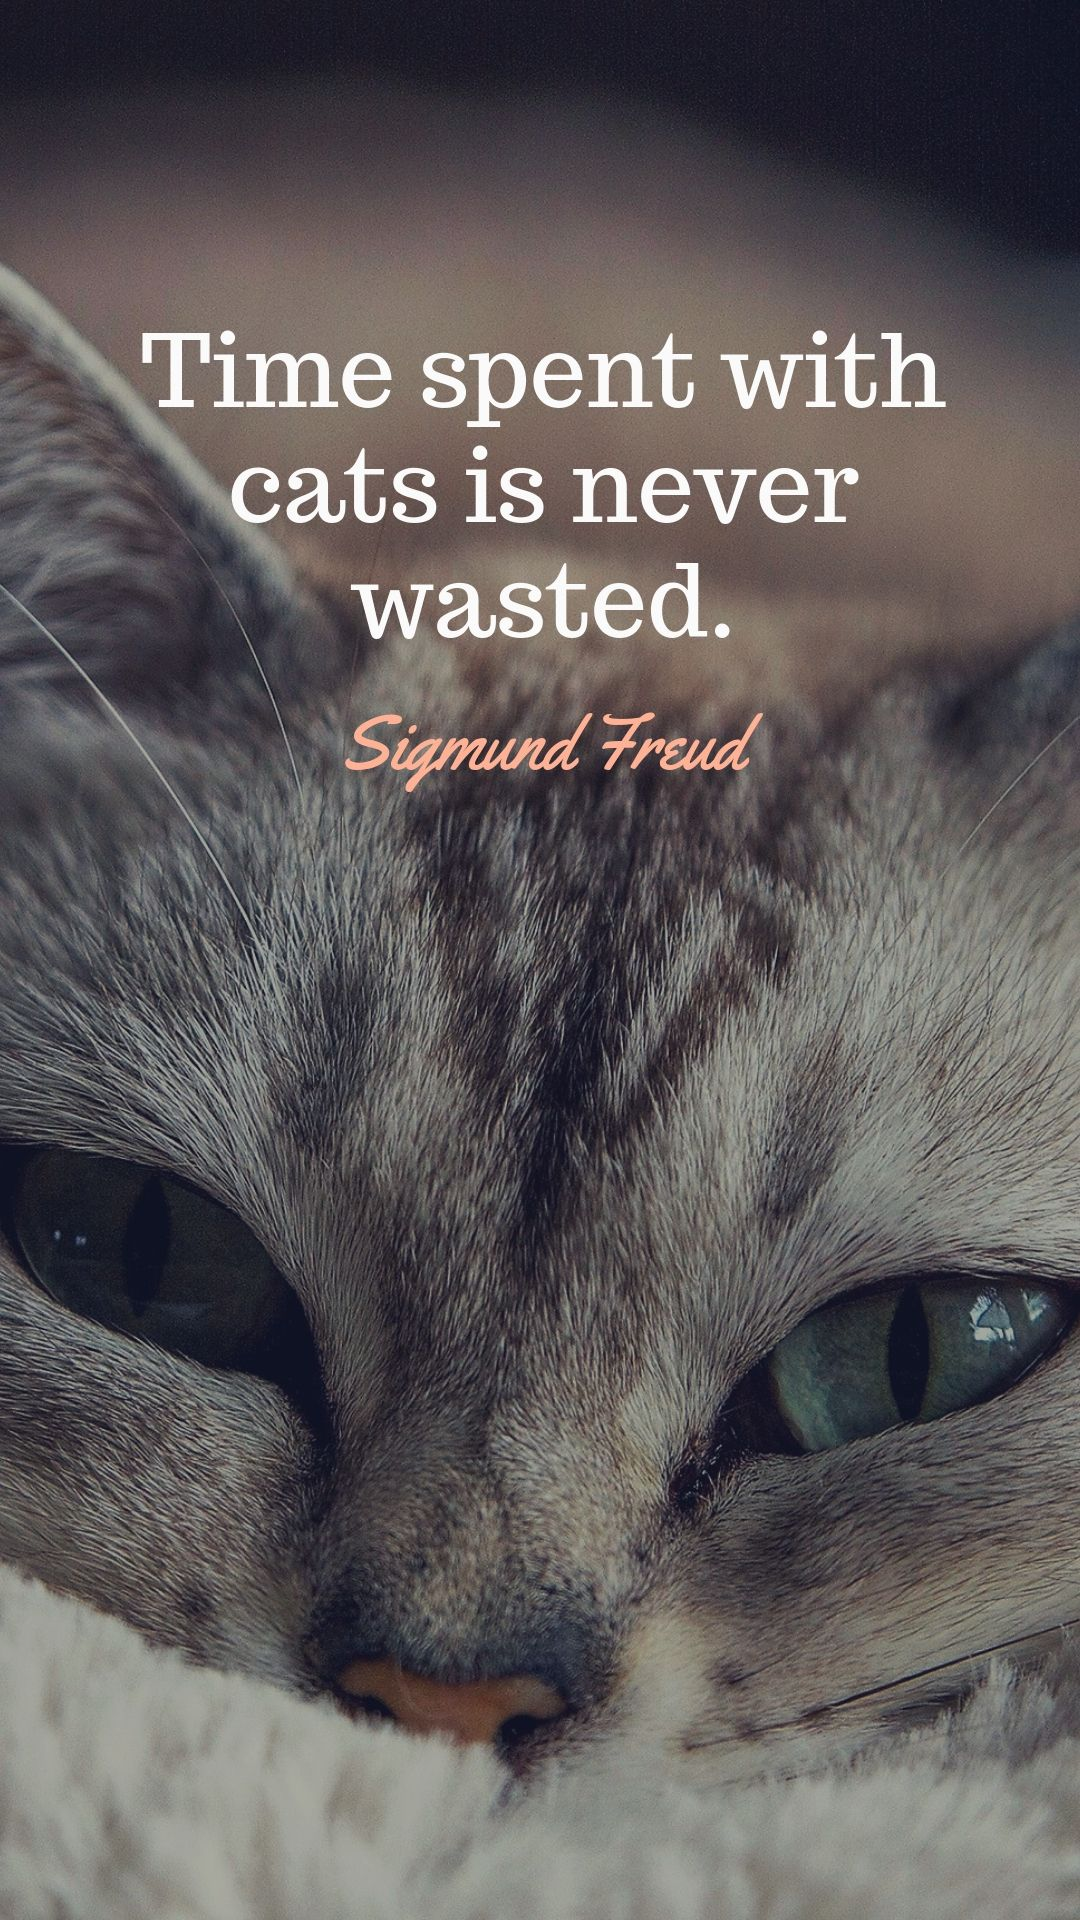 Time Spent With Cats Is Never Wasted Sigmund Freud Quotes Dailyquotes Catquotes Quotesaboutcats Sigmundfr Cat Love Quotes Freud Quotes Cruelty Free Quote